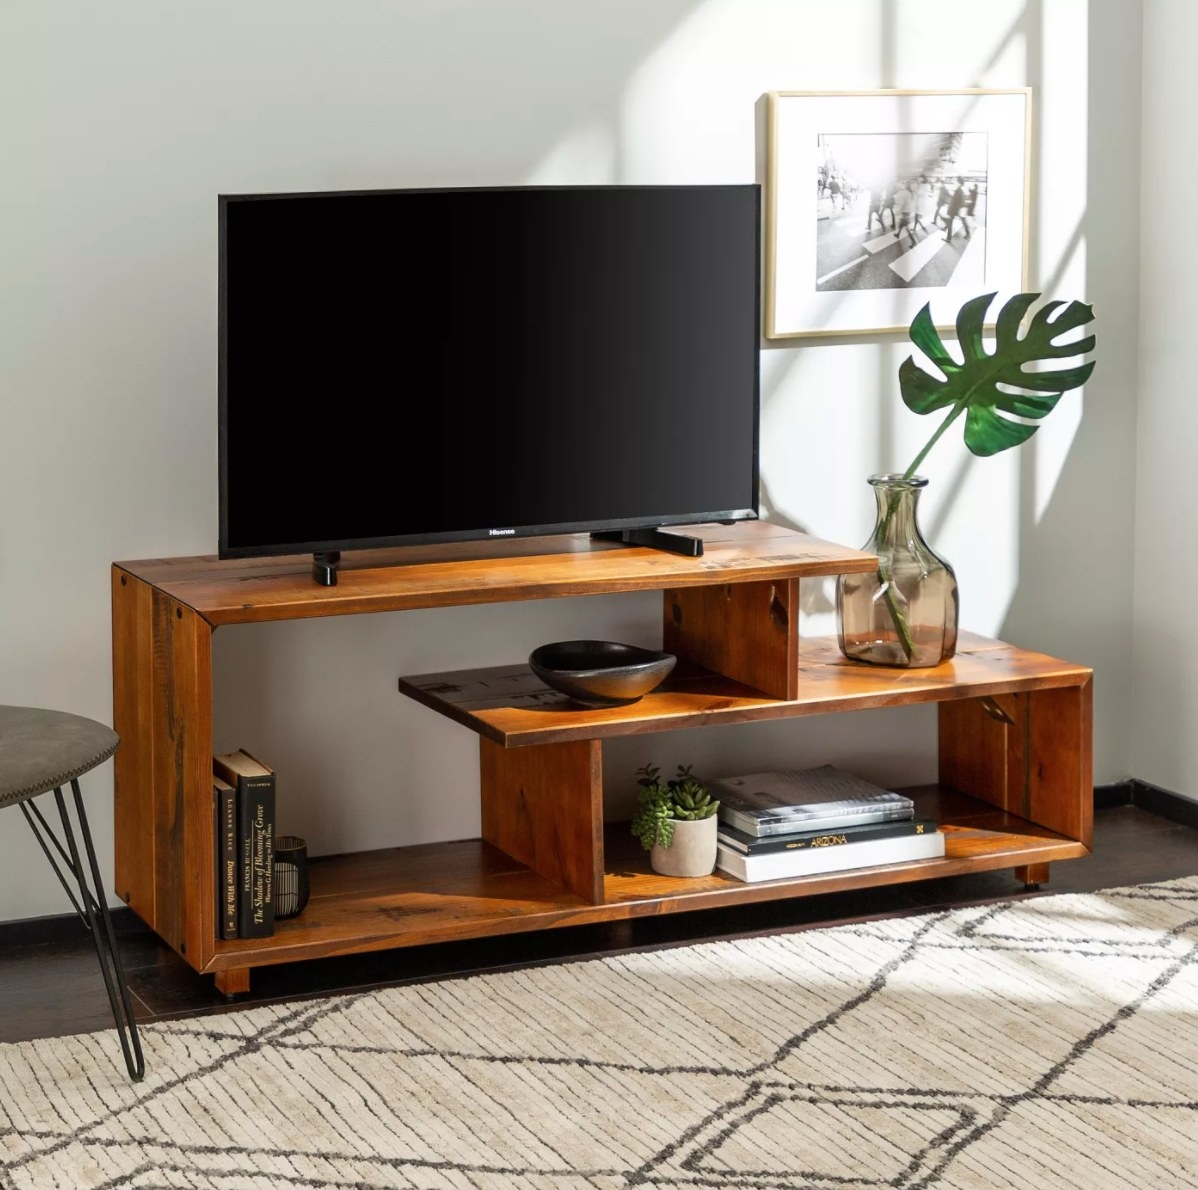 The rustic solid wood TV stand holding a flat-screen, planter, books, and a vase with a monstera leaf